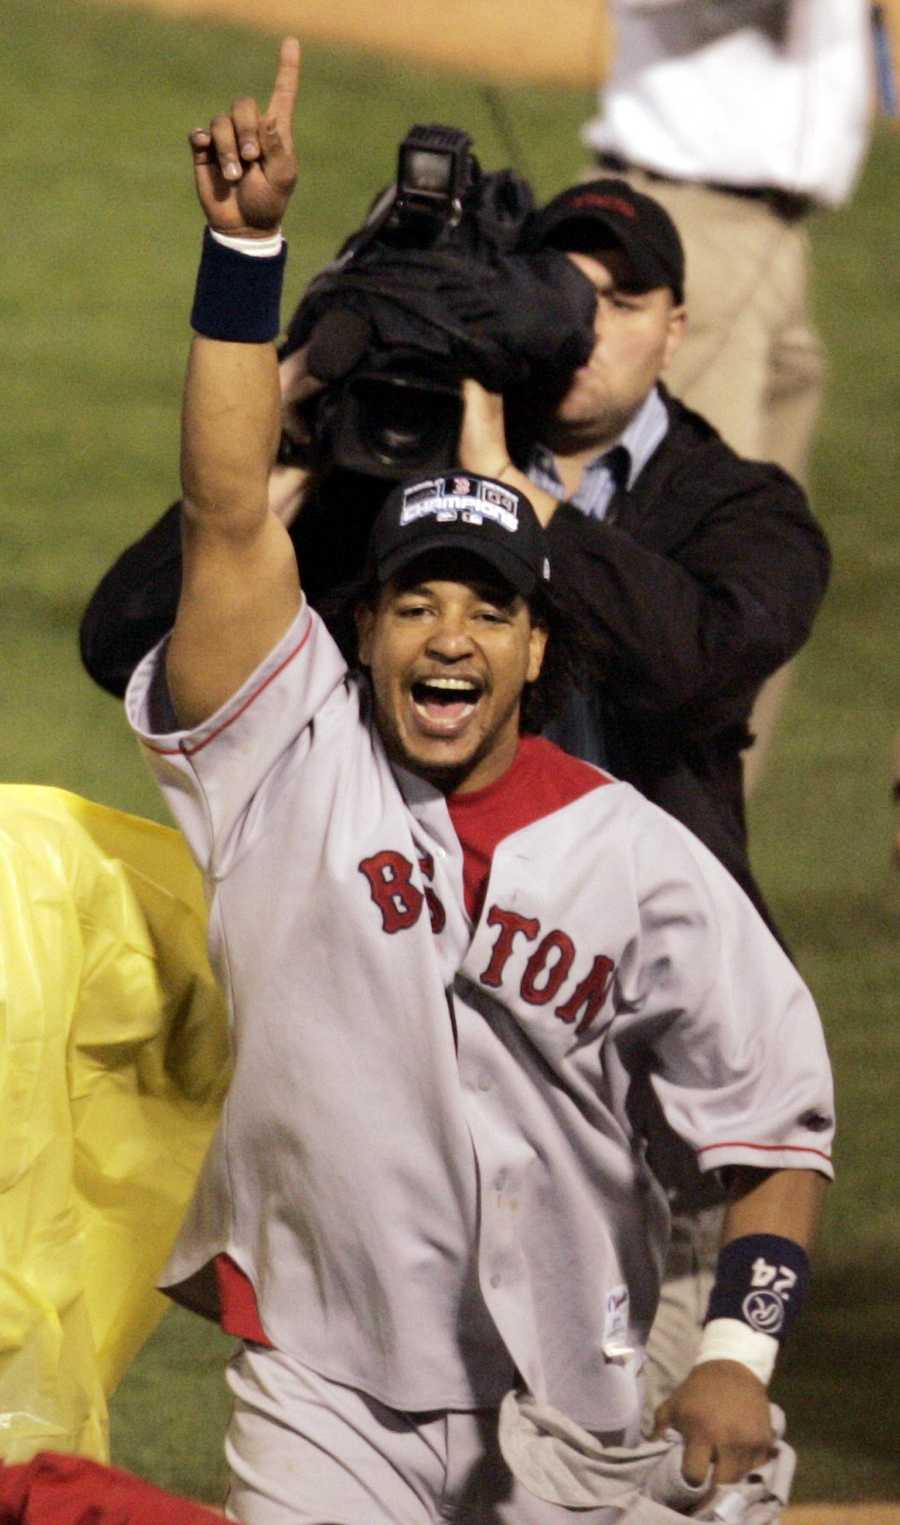 Boston Red Sox's Manny Ramirez, the World Series MVP, celebrates after Boston beat the St. Louis Cardials 3-0 in Game 4 to win the World Series Wednesday, Oct. 27, 2004, in St. Louis. Ramirez was name MVP of the Series.